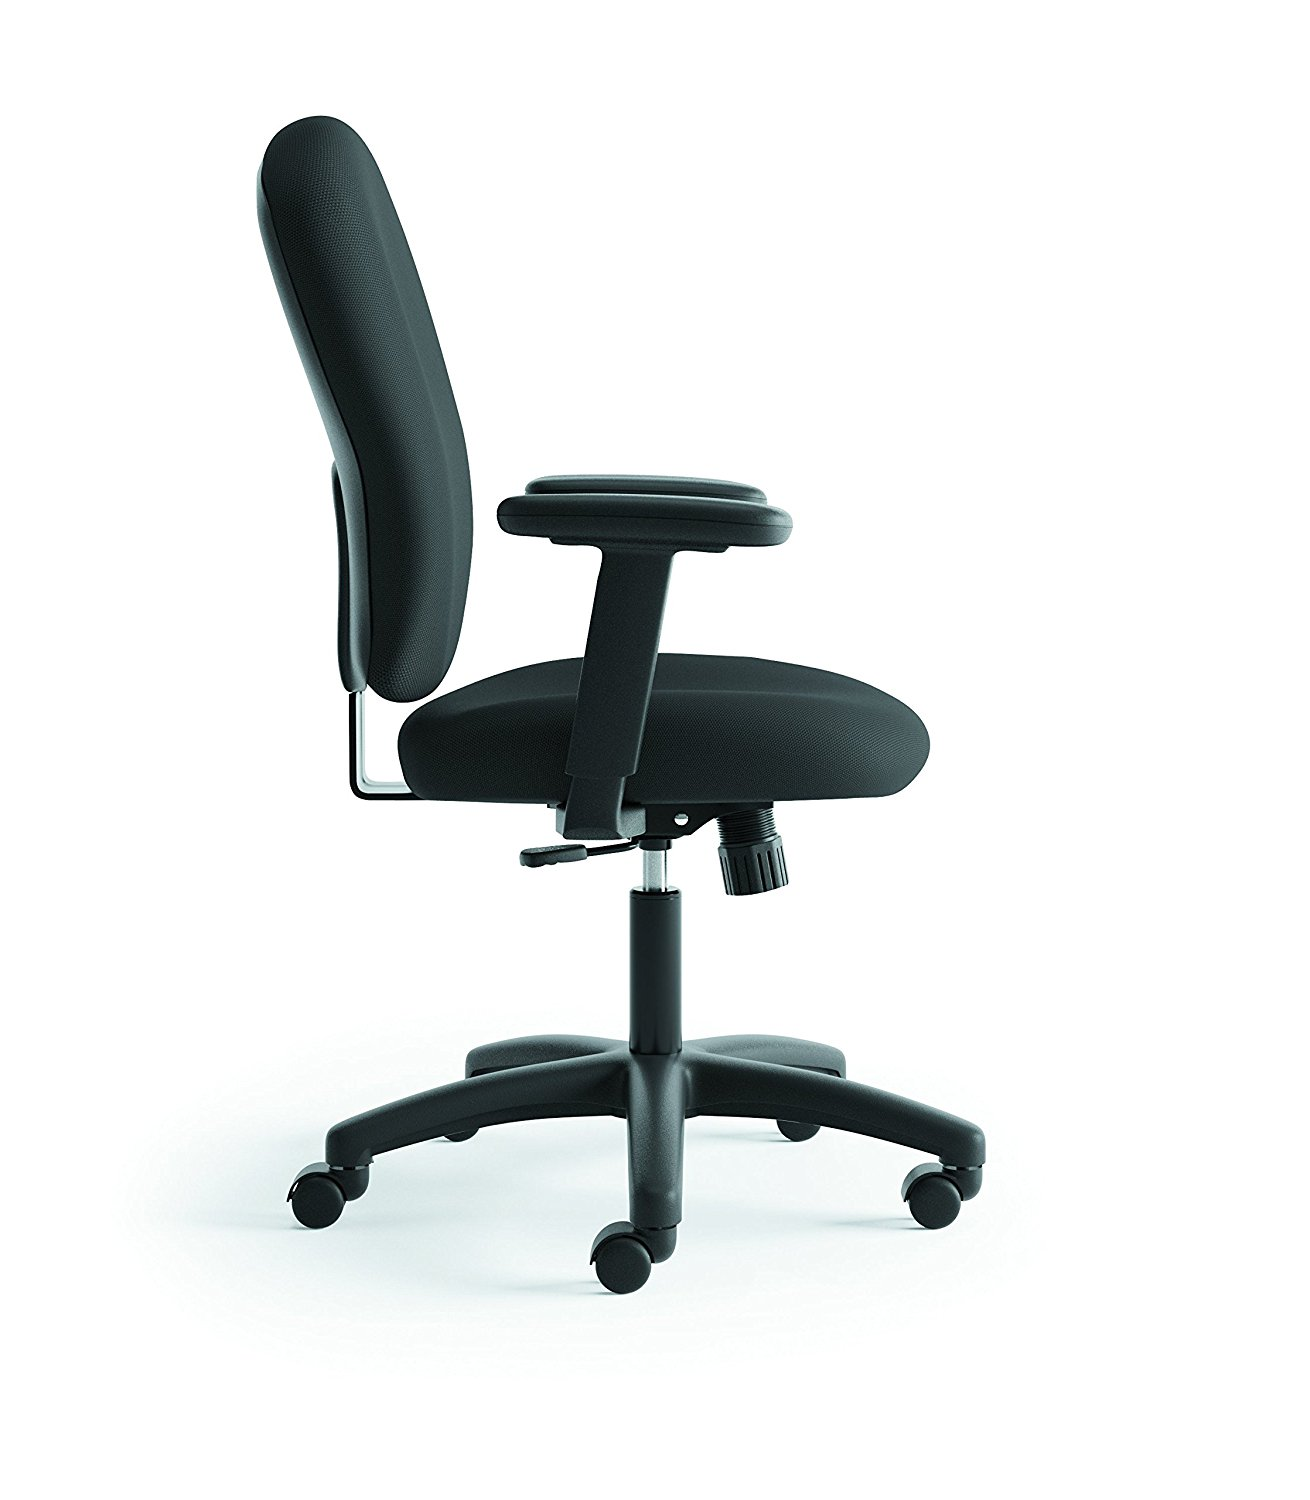 desk chair, computer chair